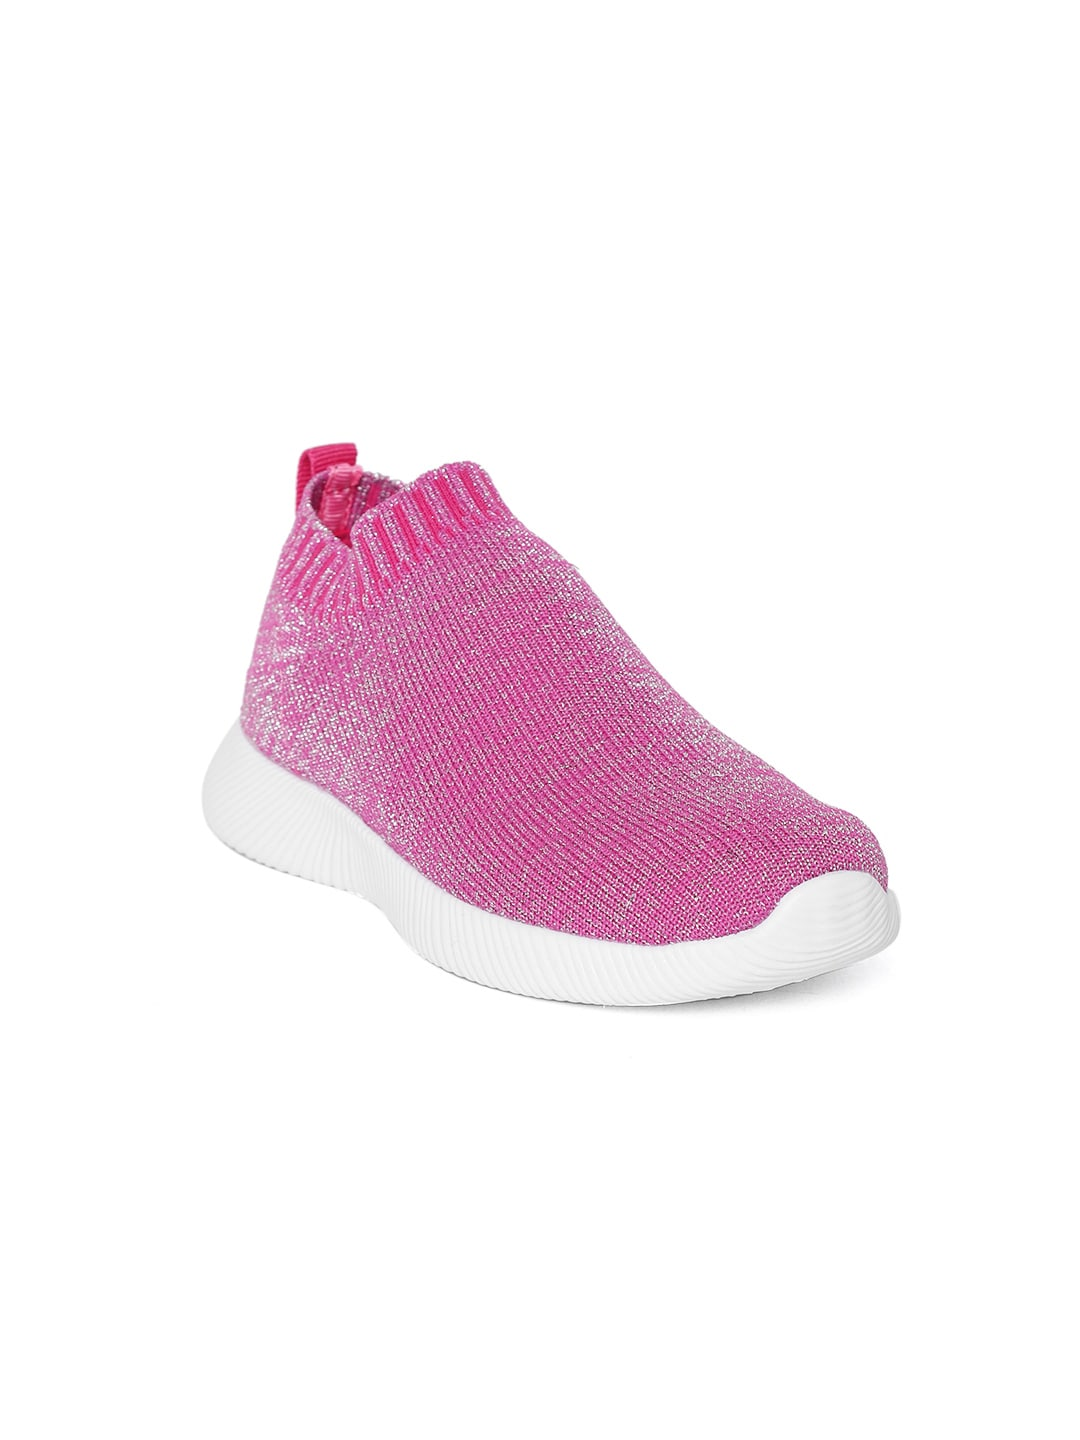 d9a6dfebbc United Colors of Benetton Girls Pink Slip-On Sneakers